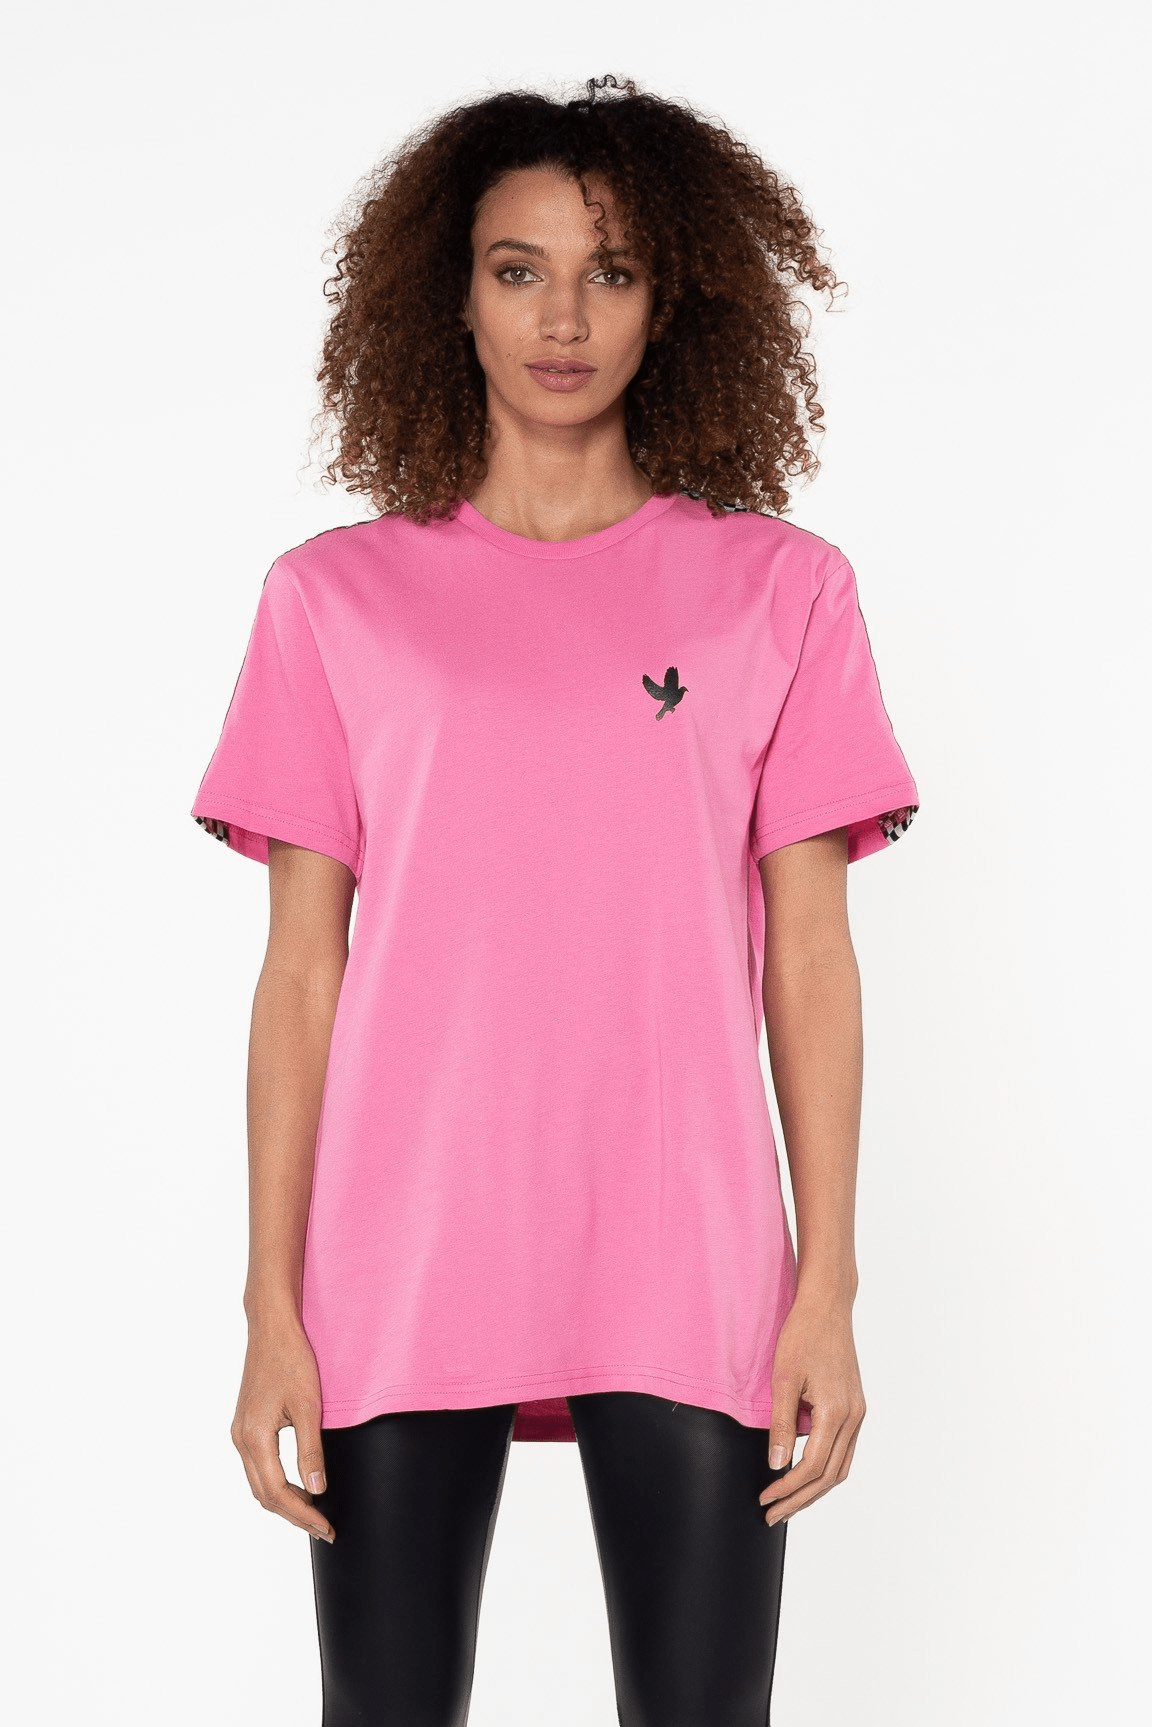 Damier Cotton Tee Hot Pink - The Bobby Boga